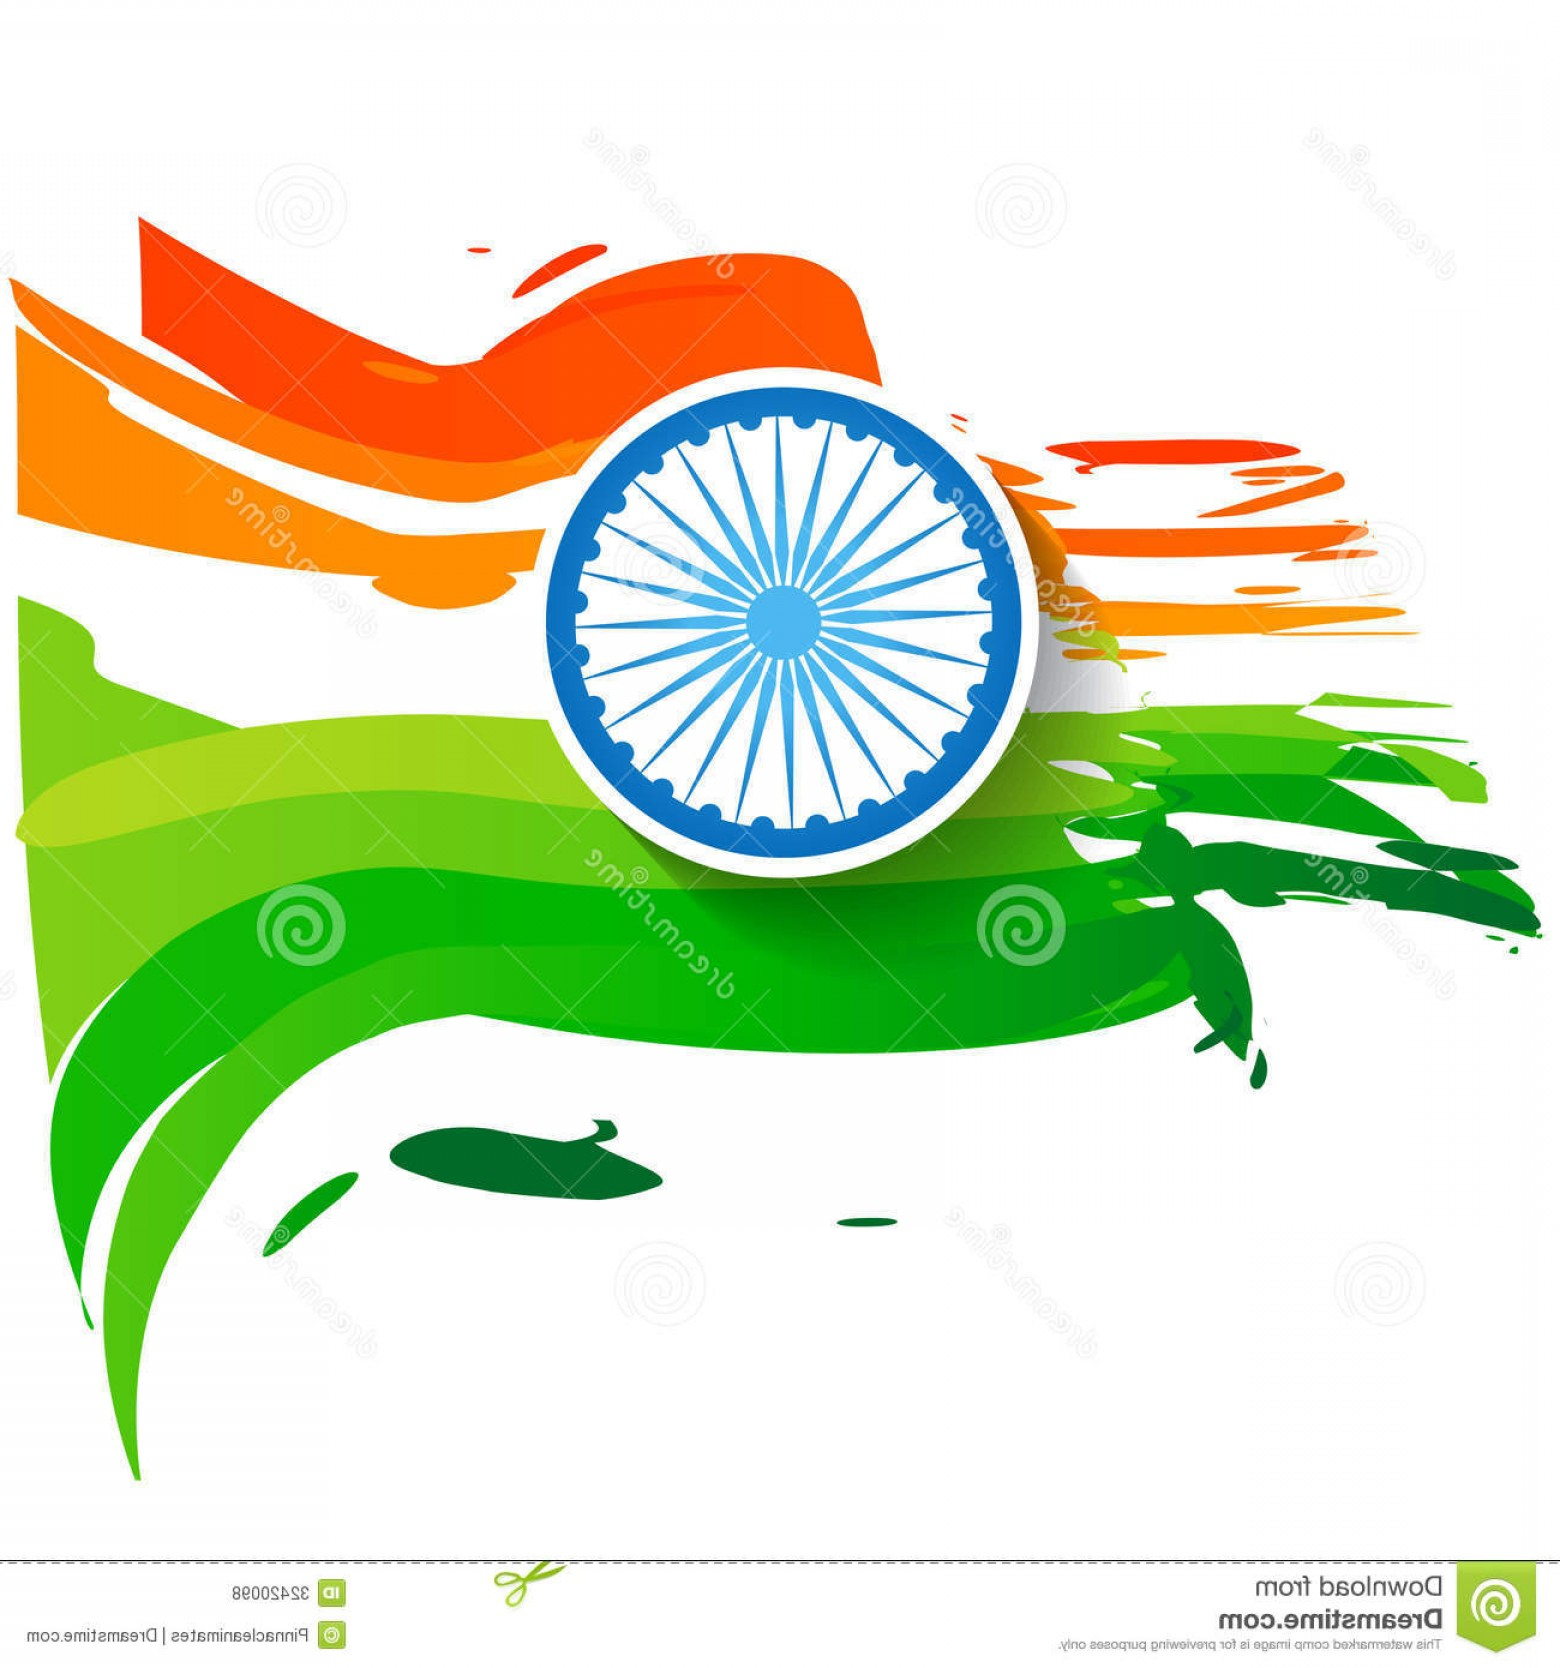 India Flag Vector: Royalty Free Stock Photos Wave Style Indian Flag Stylish Vector Design Image